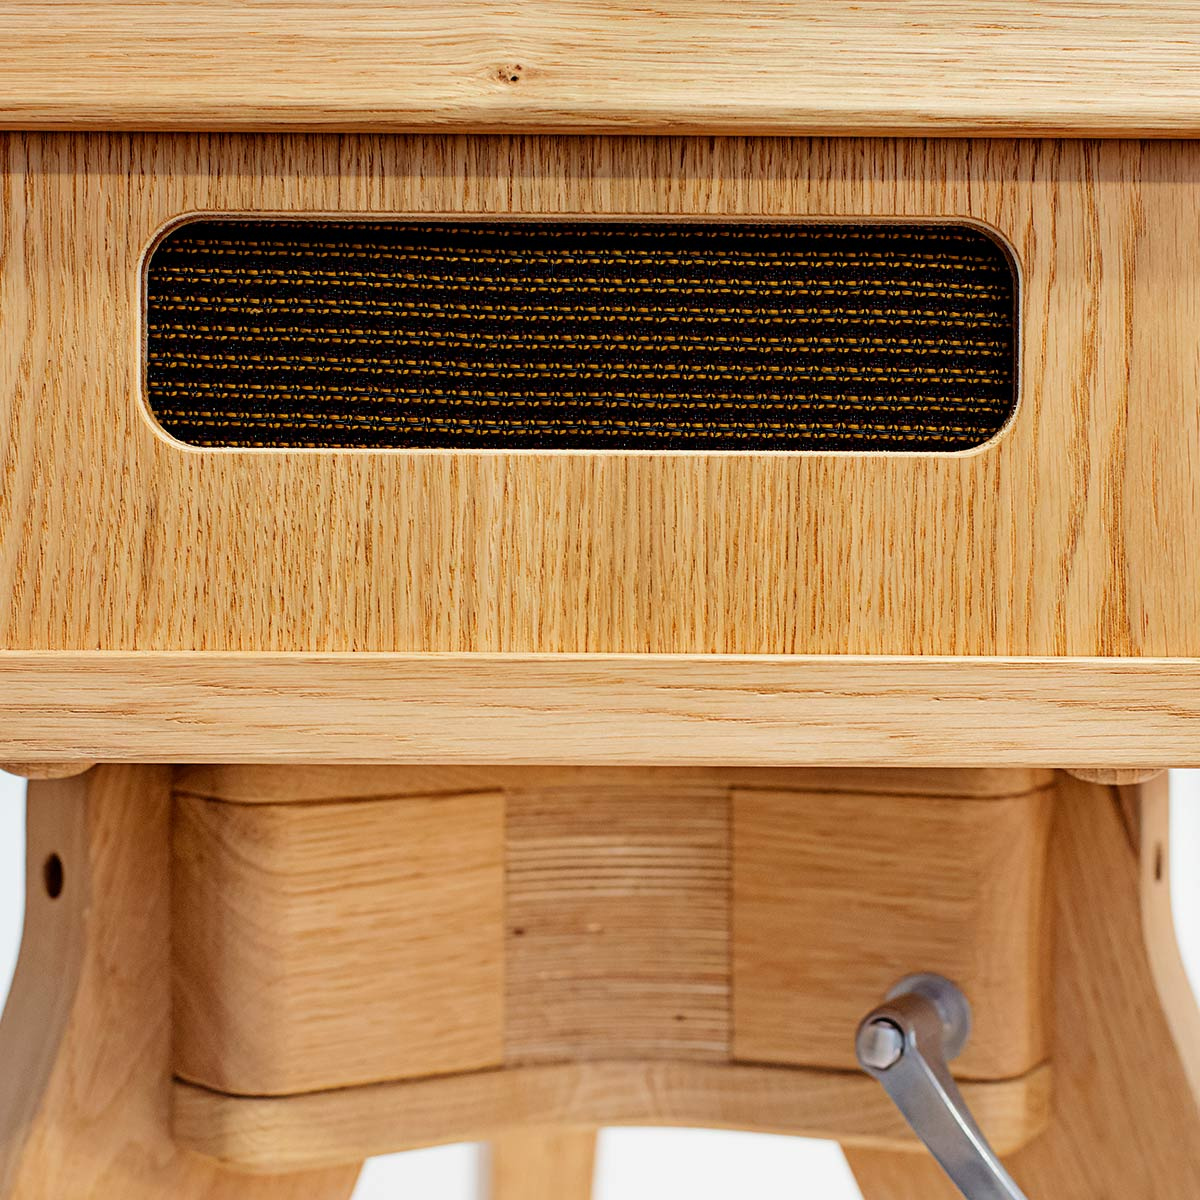 Detail shot close ups of the Oak Photo Booth